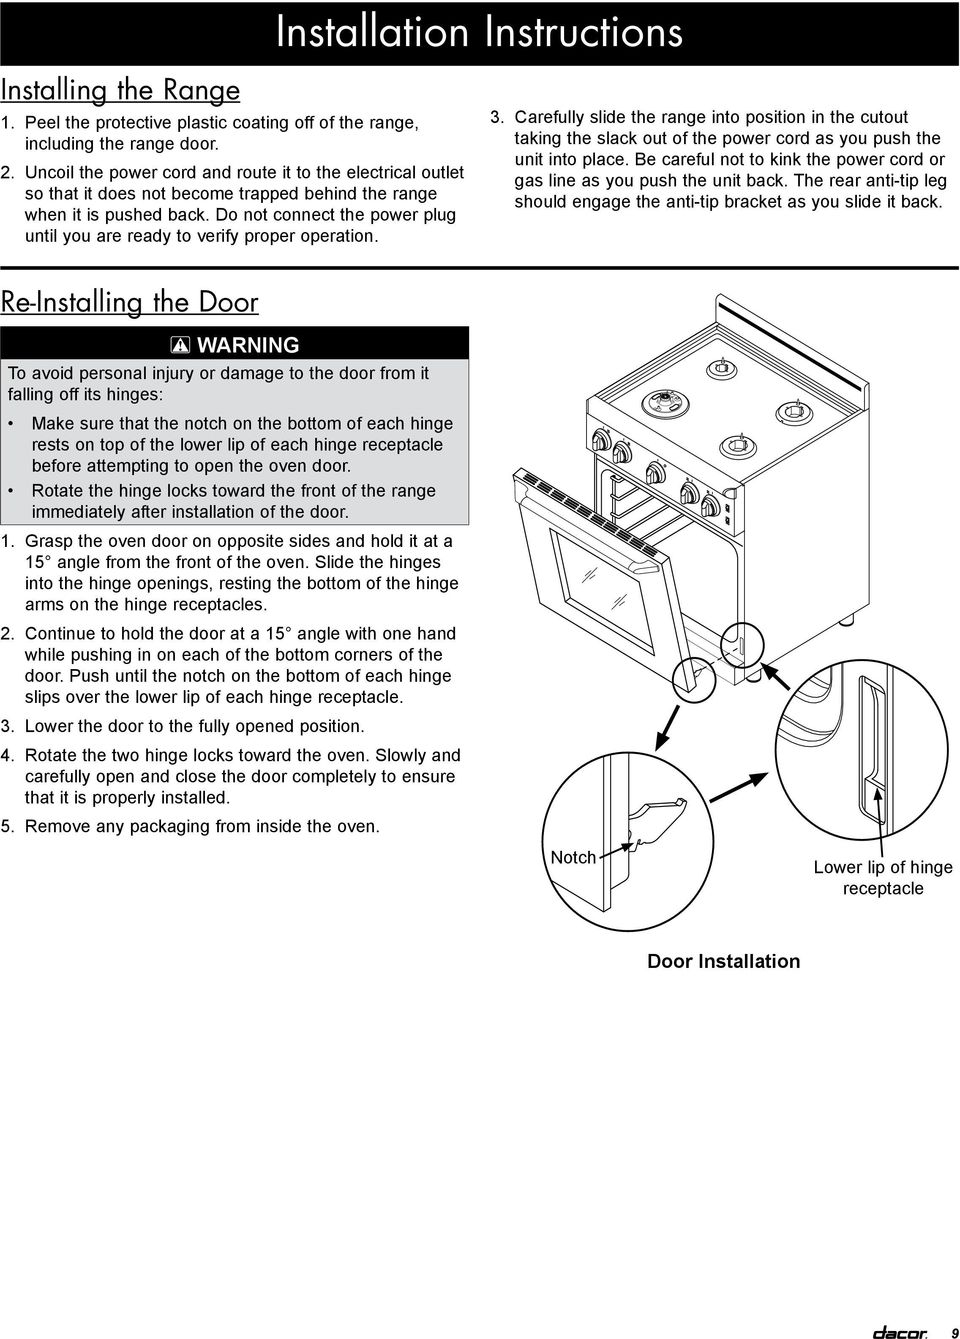 Installation Instructions Epicure 30 Inch Gas Range For Use With Continuity Tester Circuit Searscom Do Not Connect The Power Plug Until You Are Ready To Verify Proper Operation